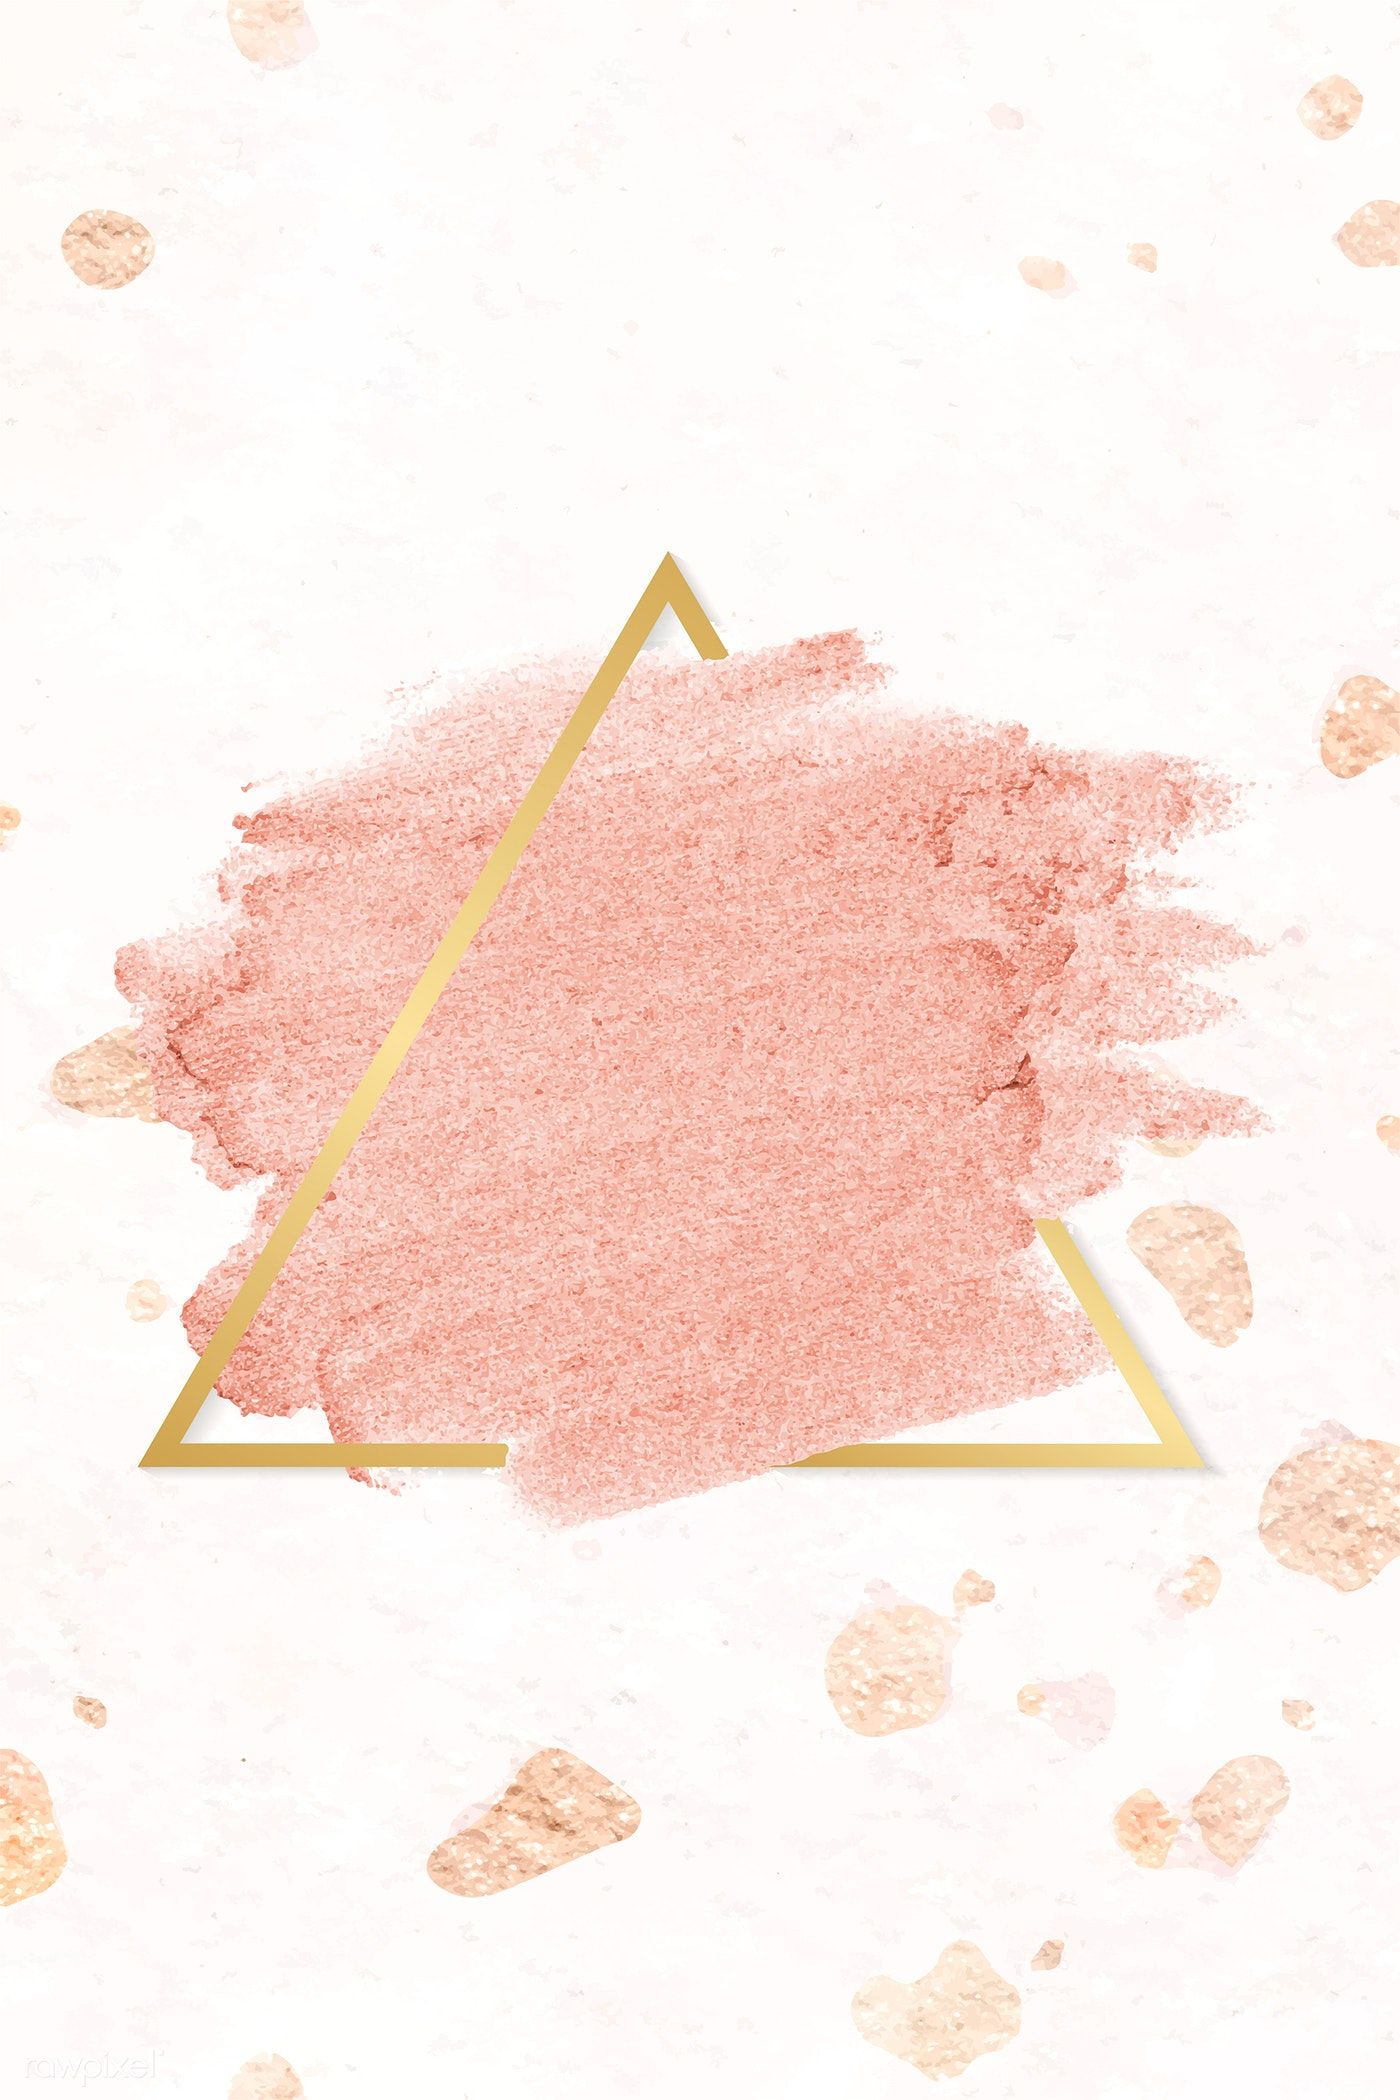 Pastel Pink Paint With A Gold Triangle Frame On A Light Pink Background Vector Free Pink Marble Background Pink And Gold Background Vector Background Pattern